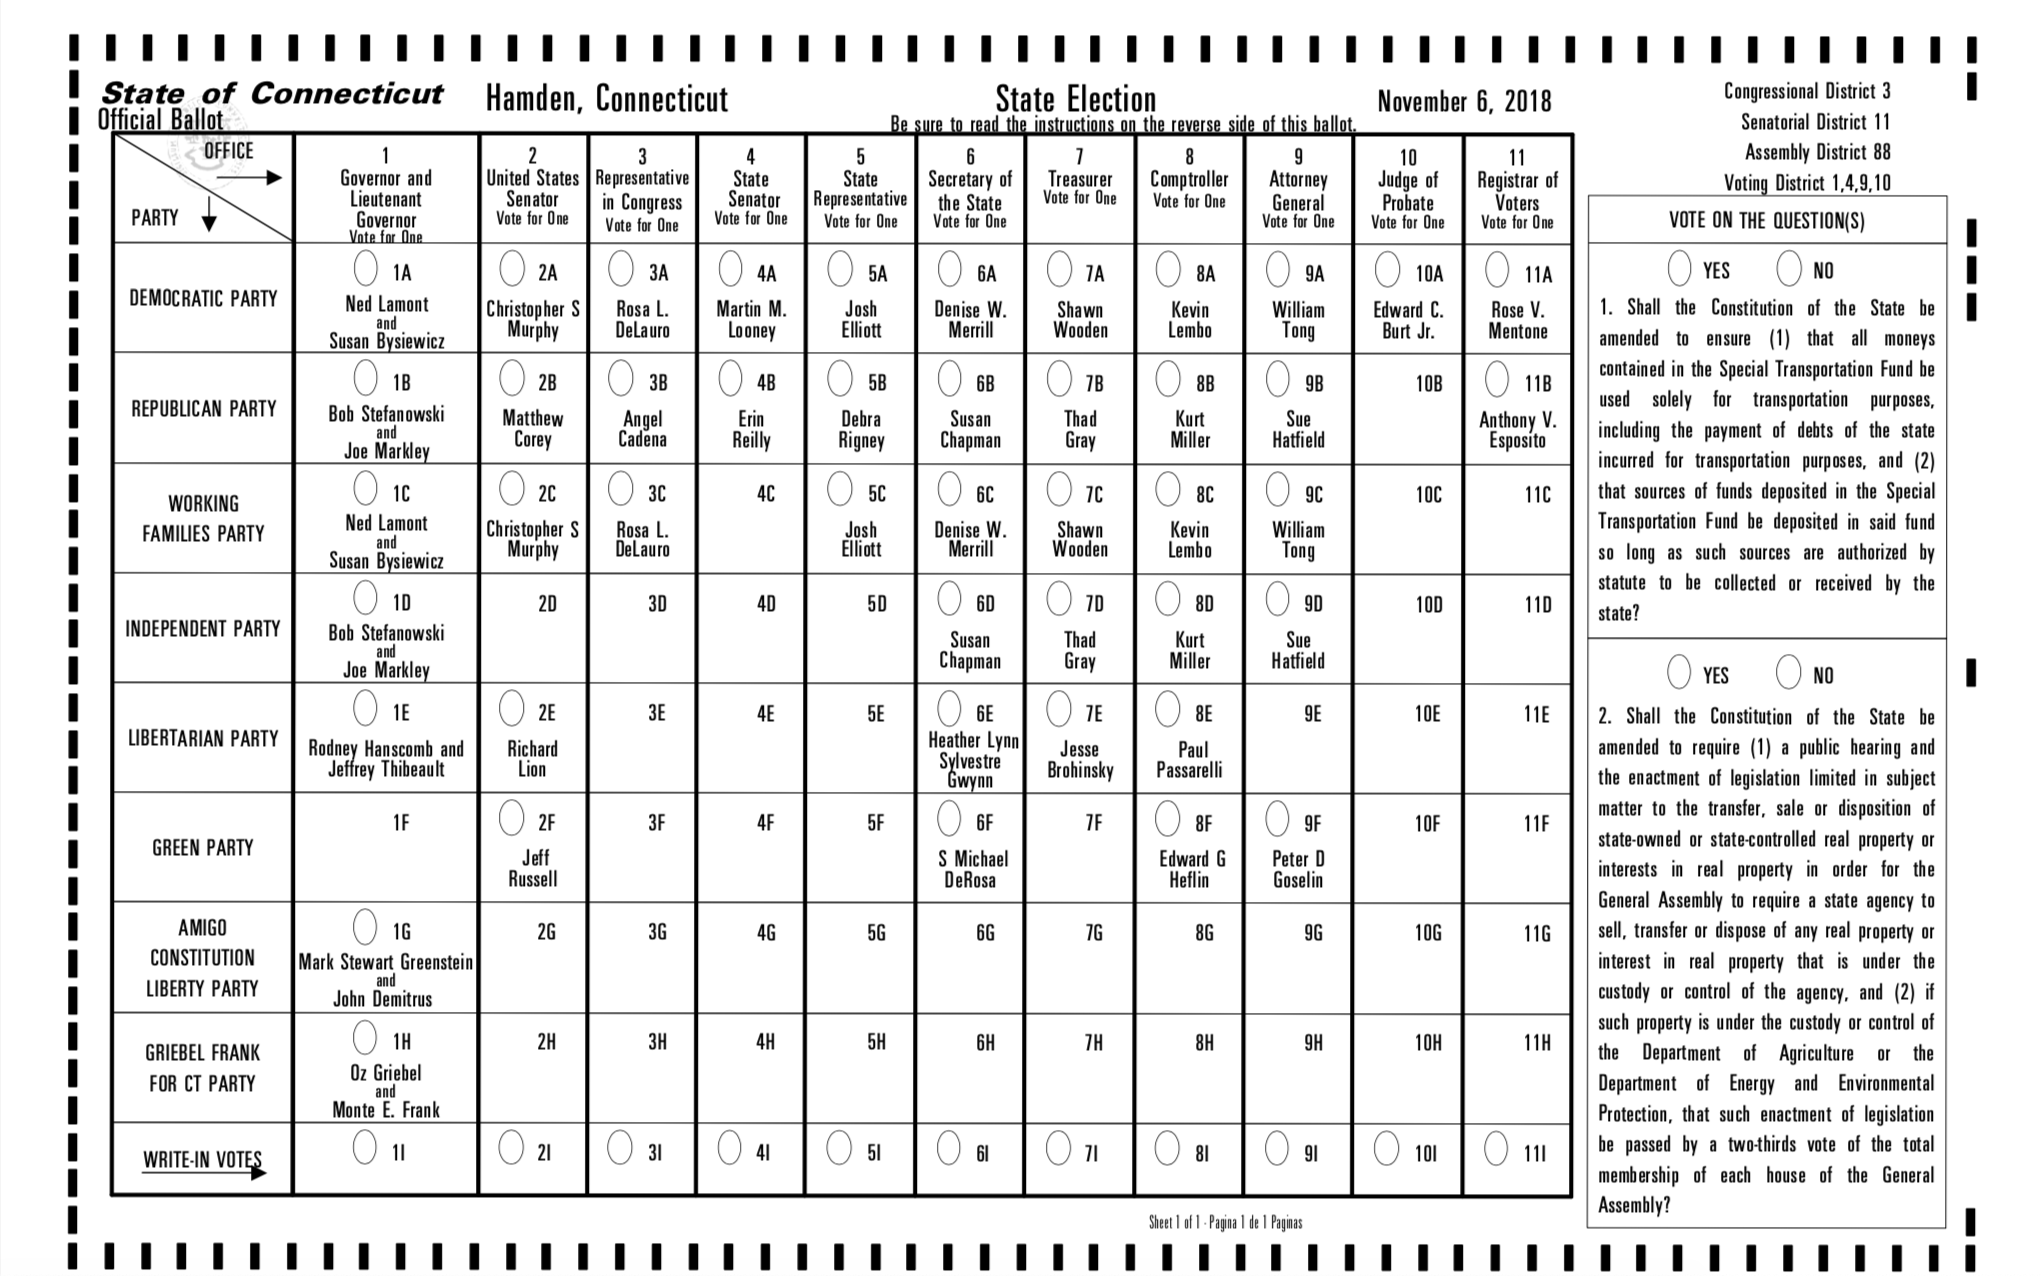 Hamden sample ballot. Click to see the full size image.